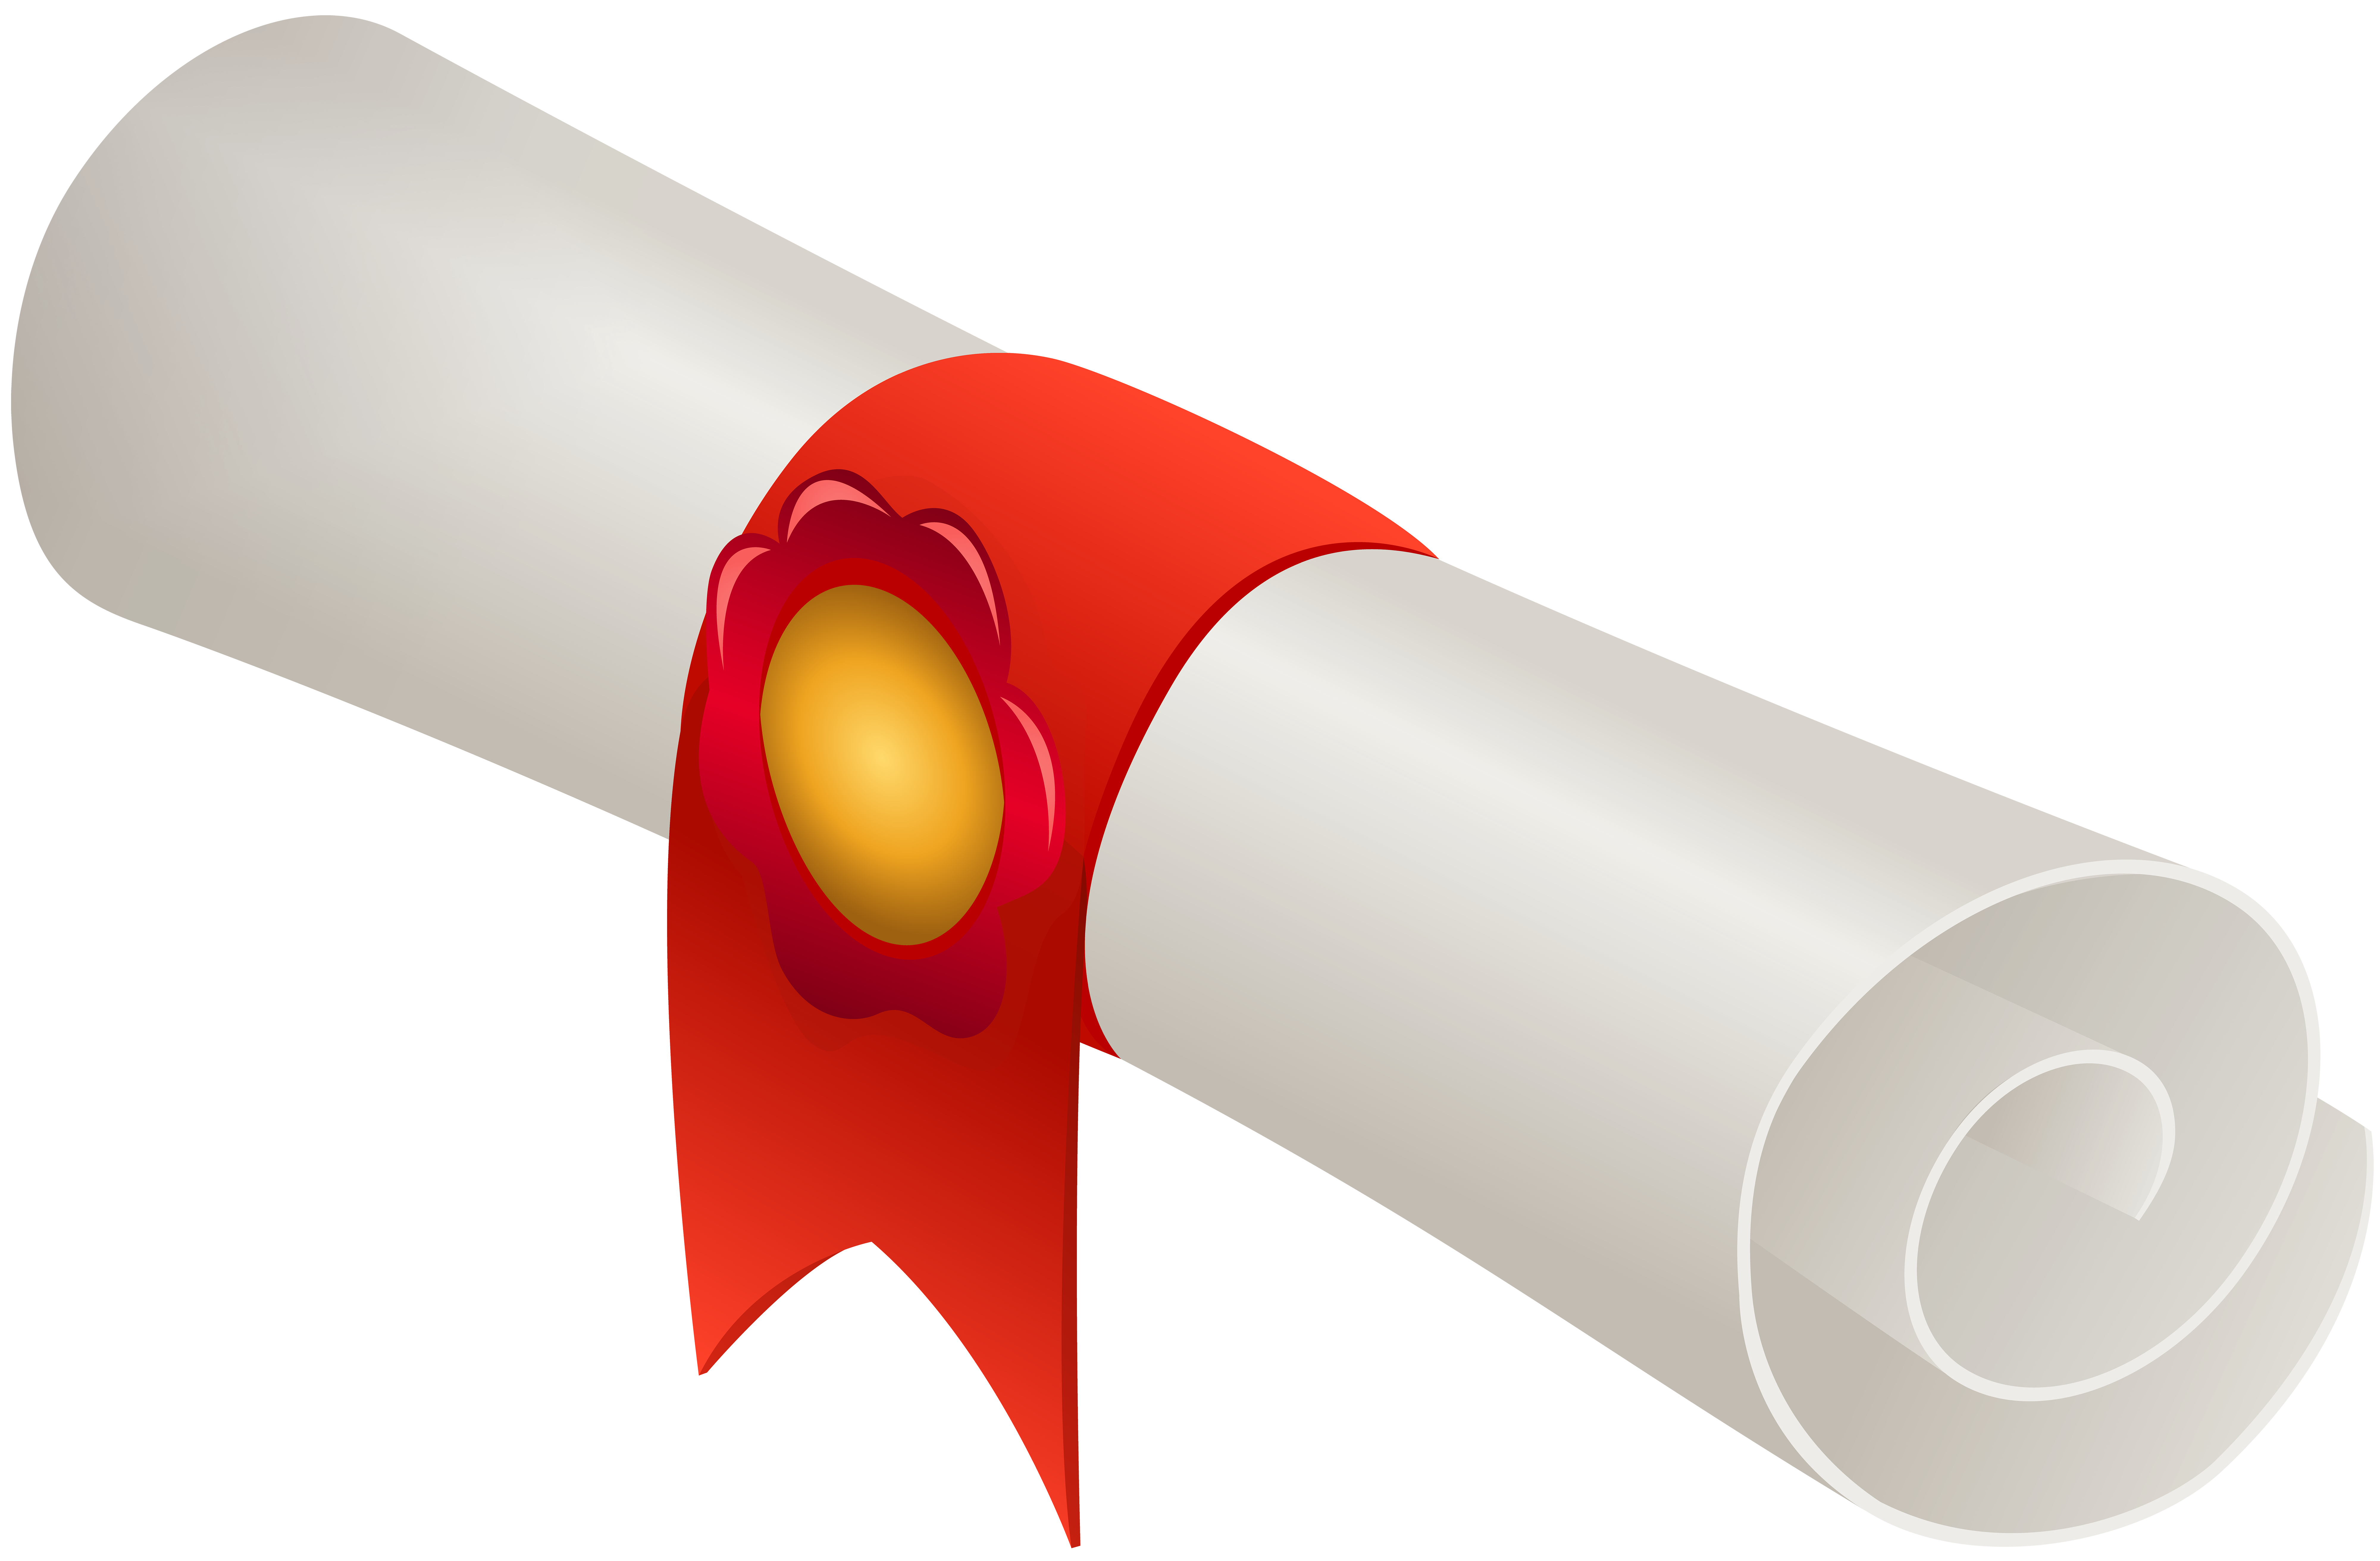 Png transparent image gallery. Diploma clipart rolled